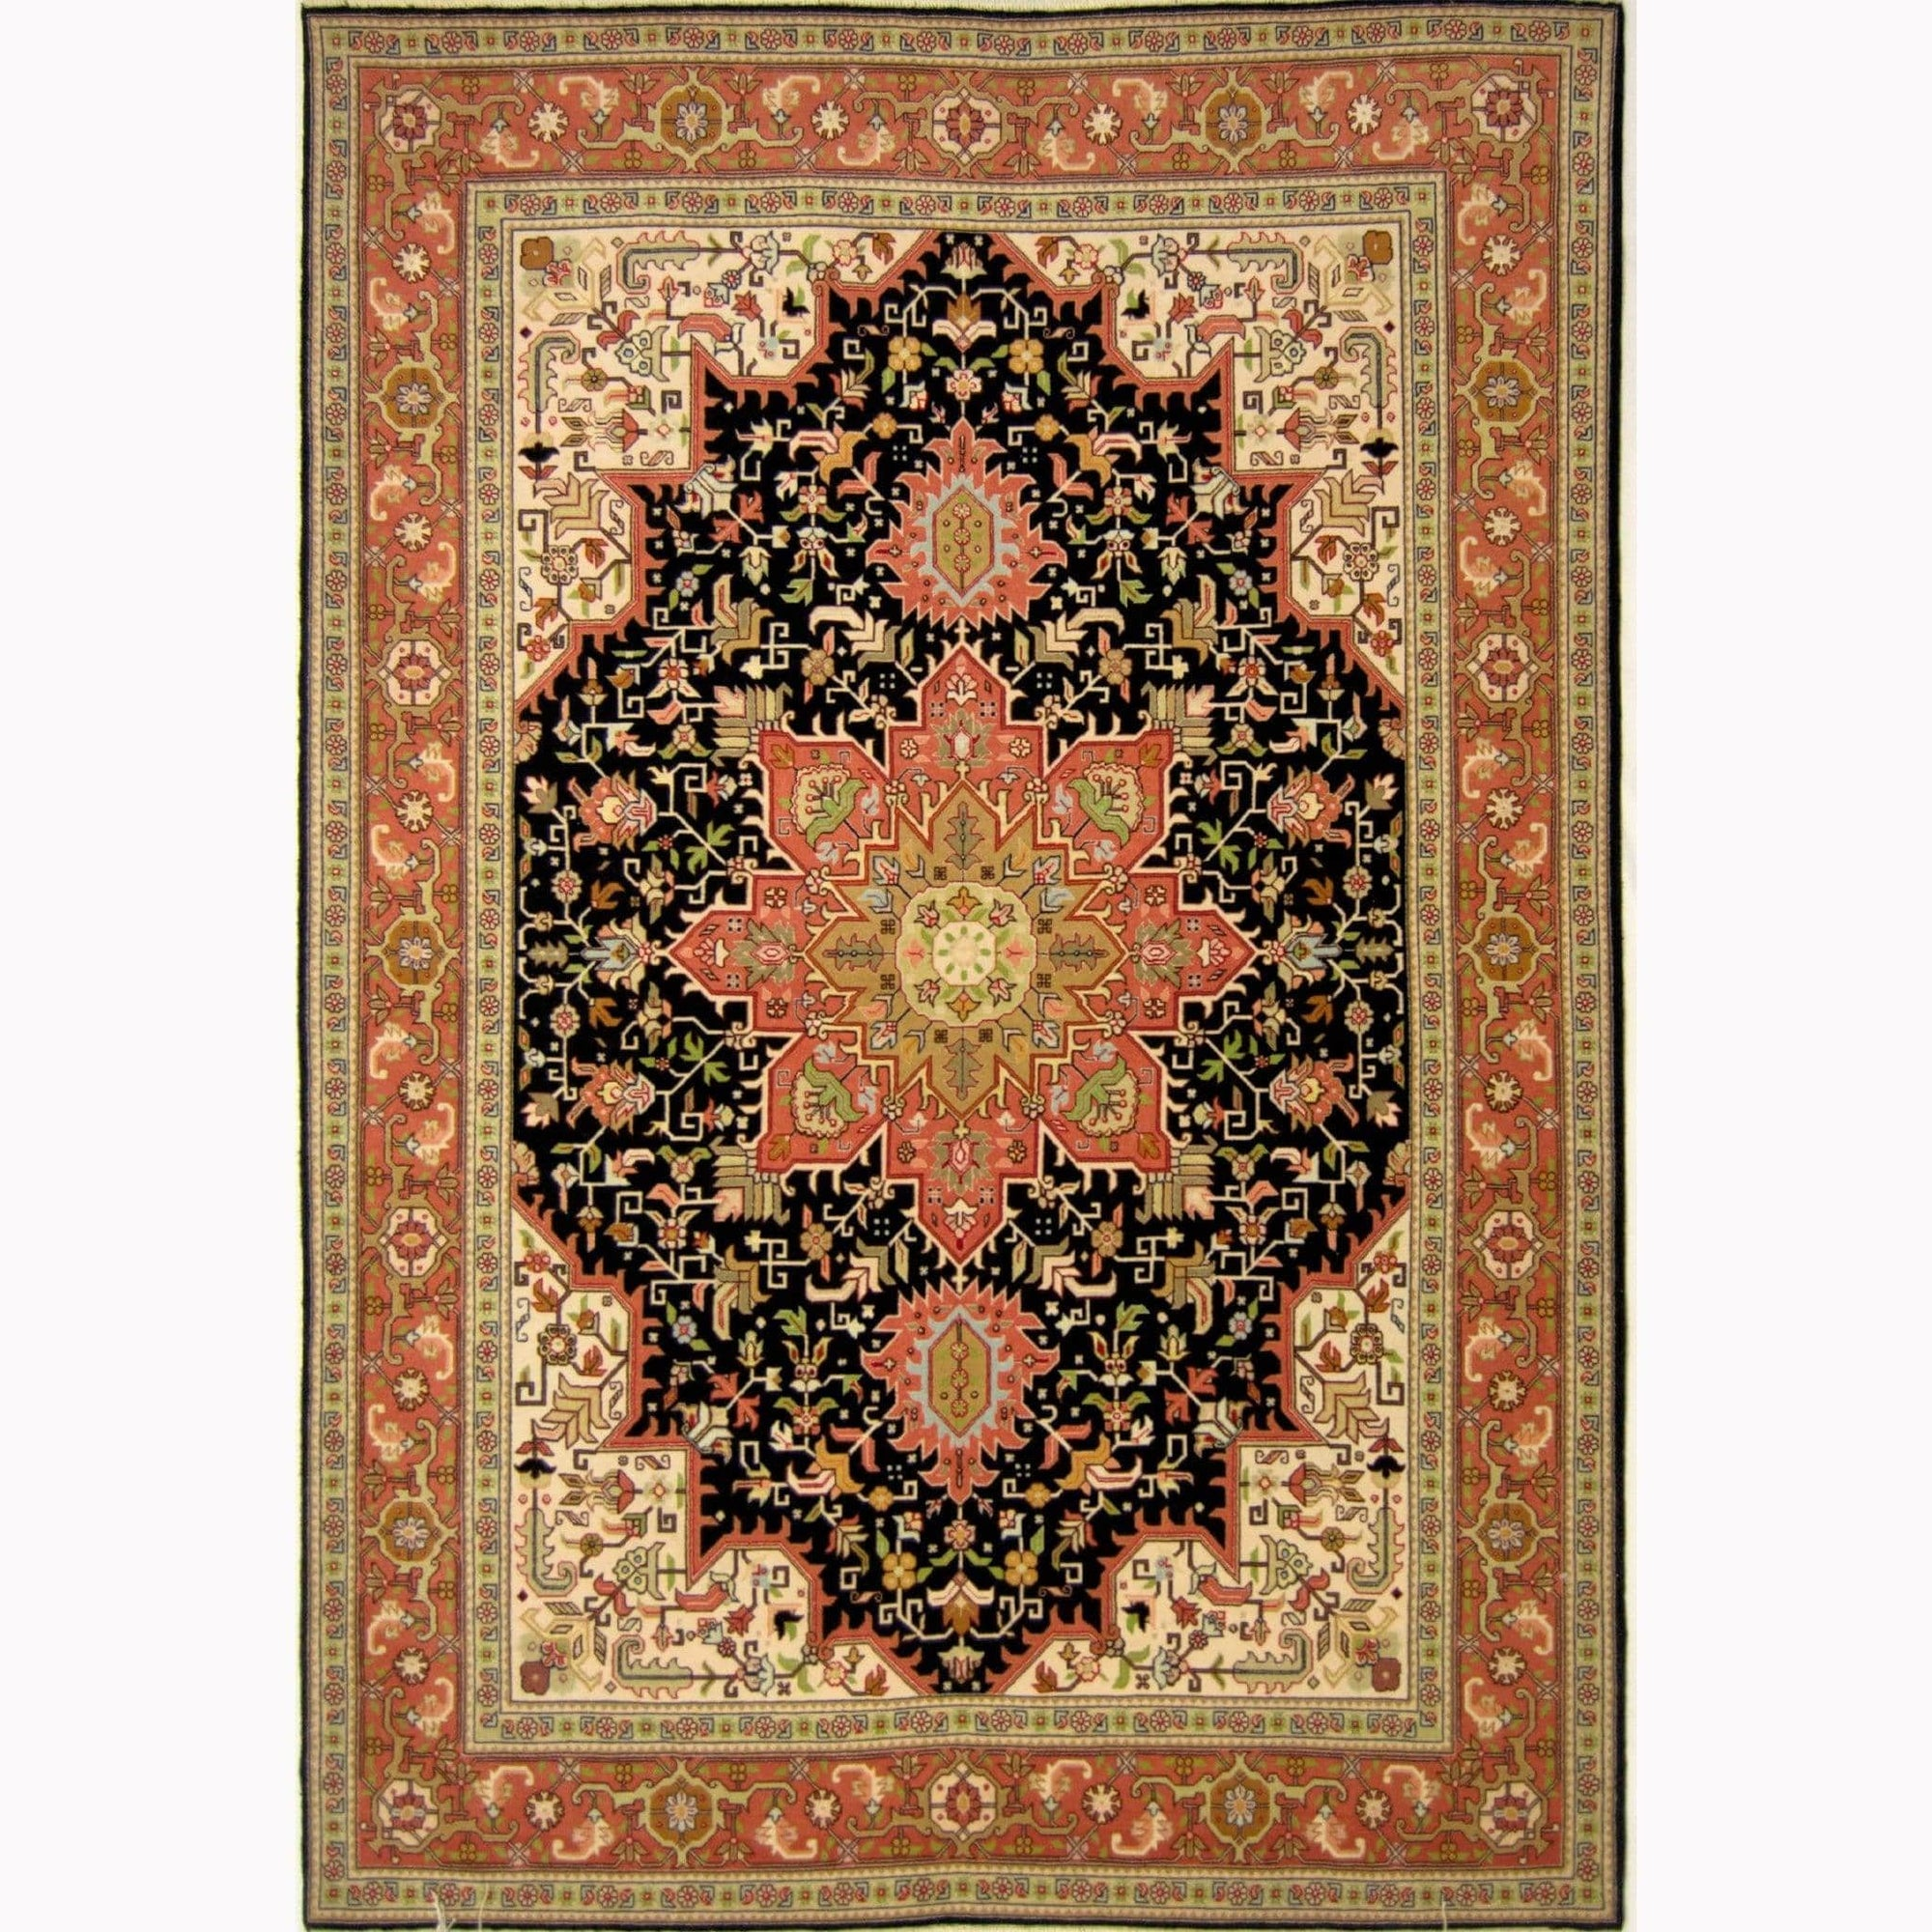 Super Fine Hand-knotted Persian Wool and Silk Tabriz Rug 148cm x 210cm Persian-Rug | House-of-Haghi | NewMarket | Auckland | NZ | Handmade Persian Rugs | Hand Knotted Persian Rugs